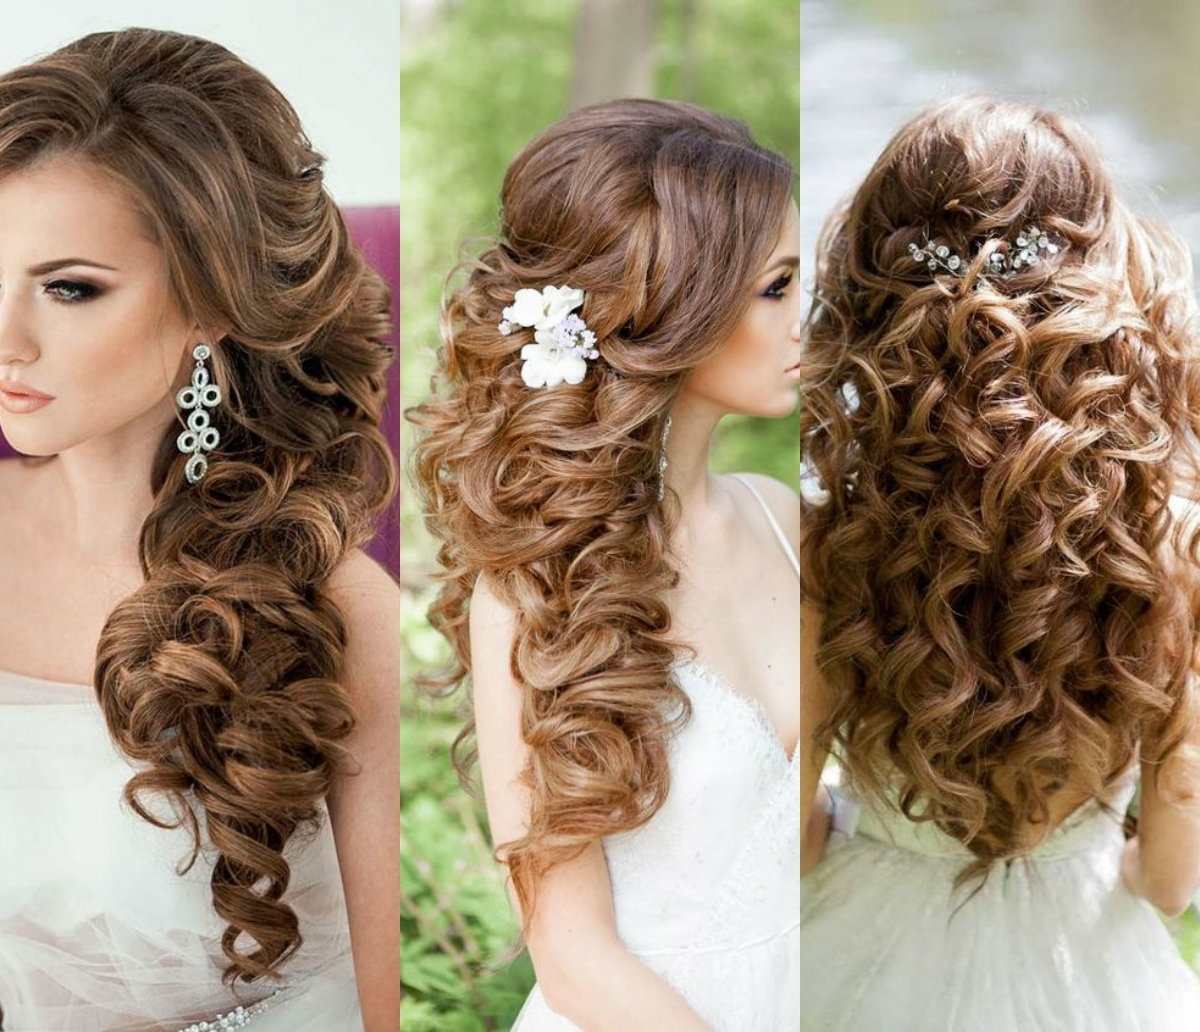 Ideas Of Bridal Curly Hairstyles For Every Length Hairs Pertaining To Bridal Updos For Curly Hair (Gallery 11 of 15)